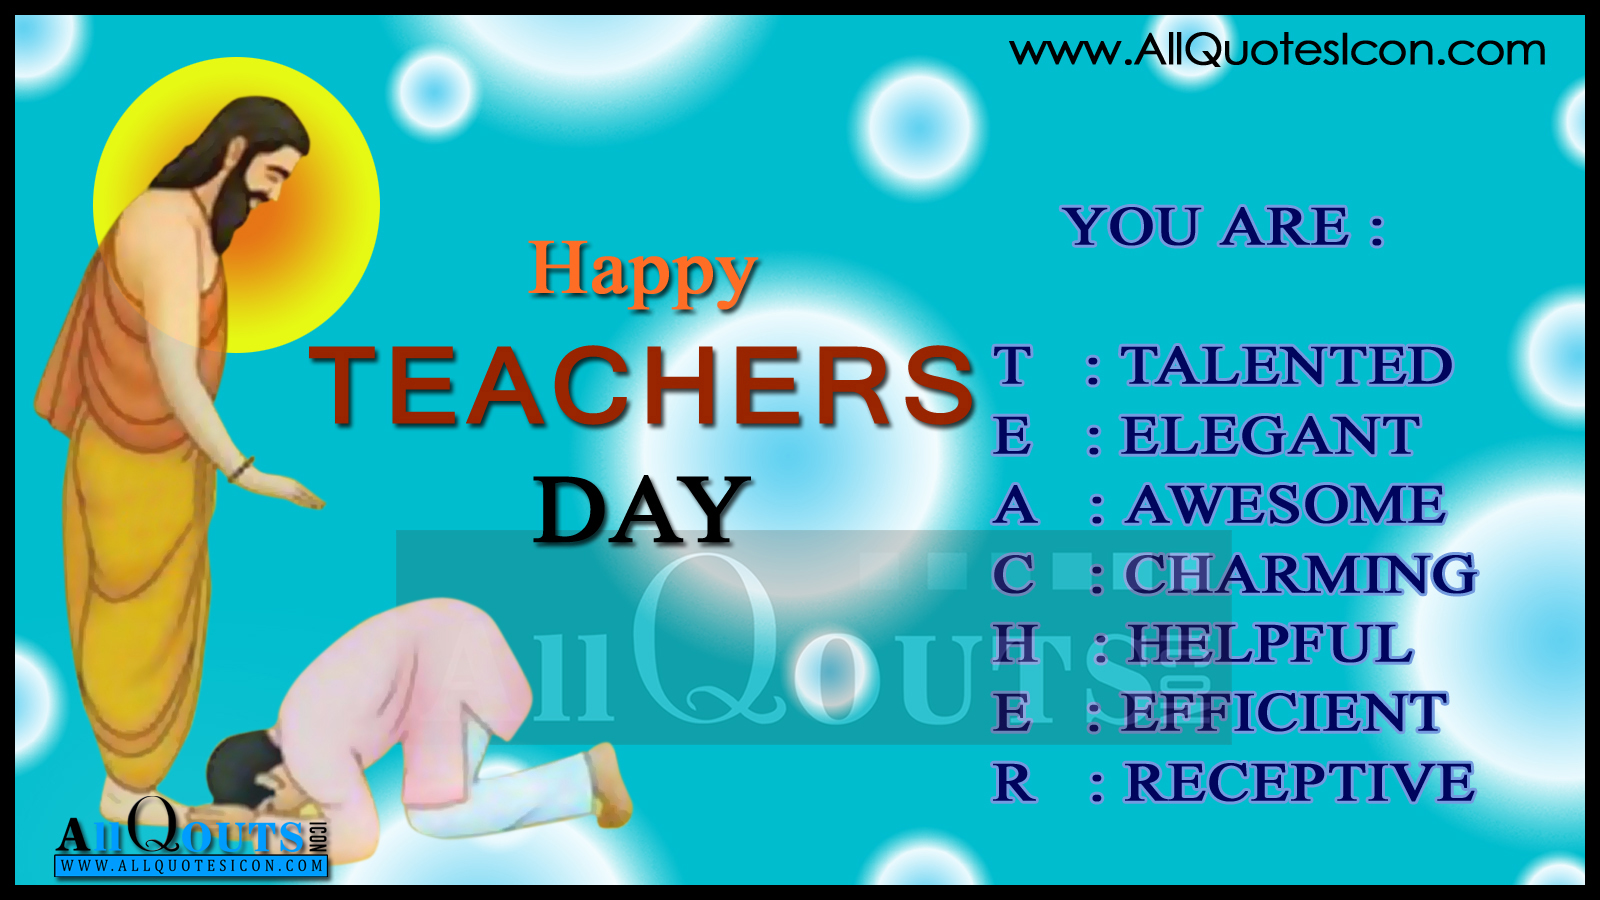 Teachers day 2015 happy teachers day sms messages wishes speech happy teachers day teachers day 2015 teachers day speech teachers day quotes thecheapjerseys Choice Image